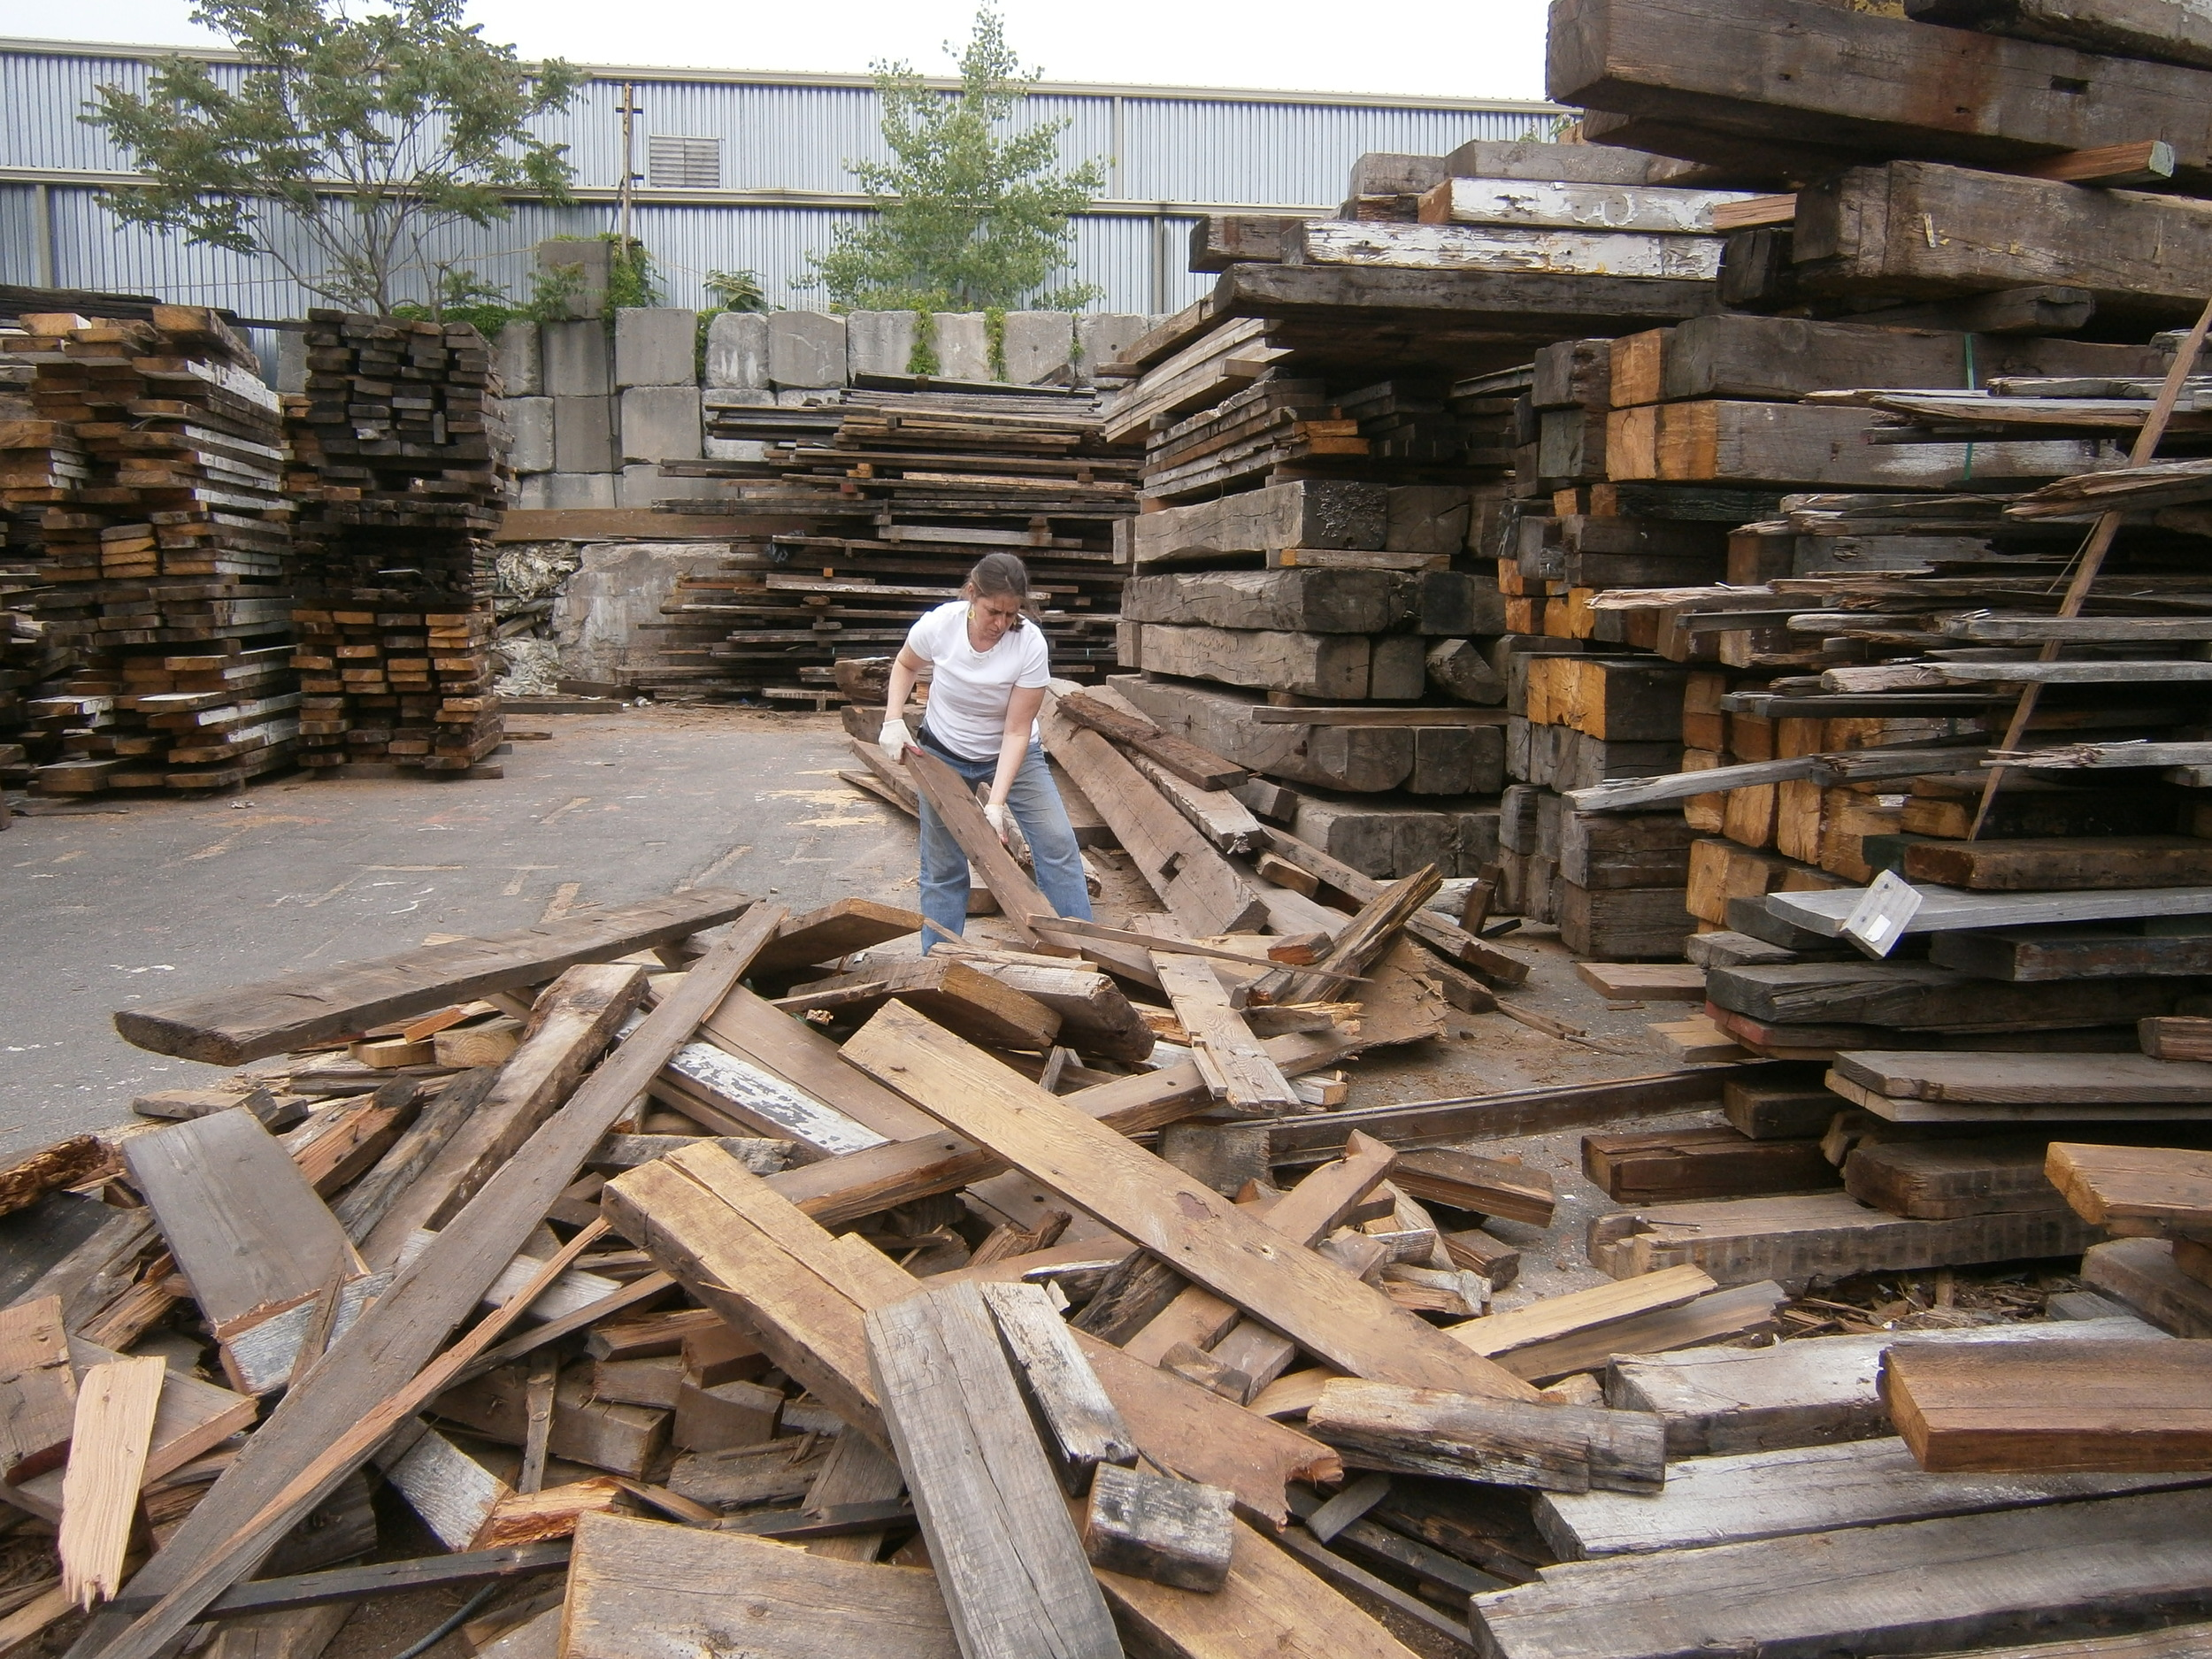 Yasmin Gur working at the MFine Lumber collecting wood.